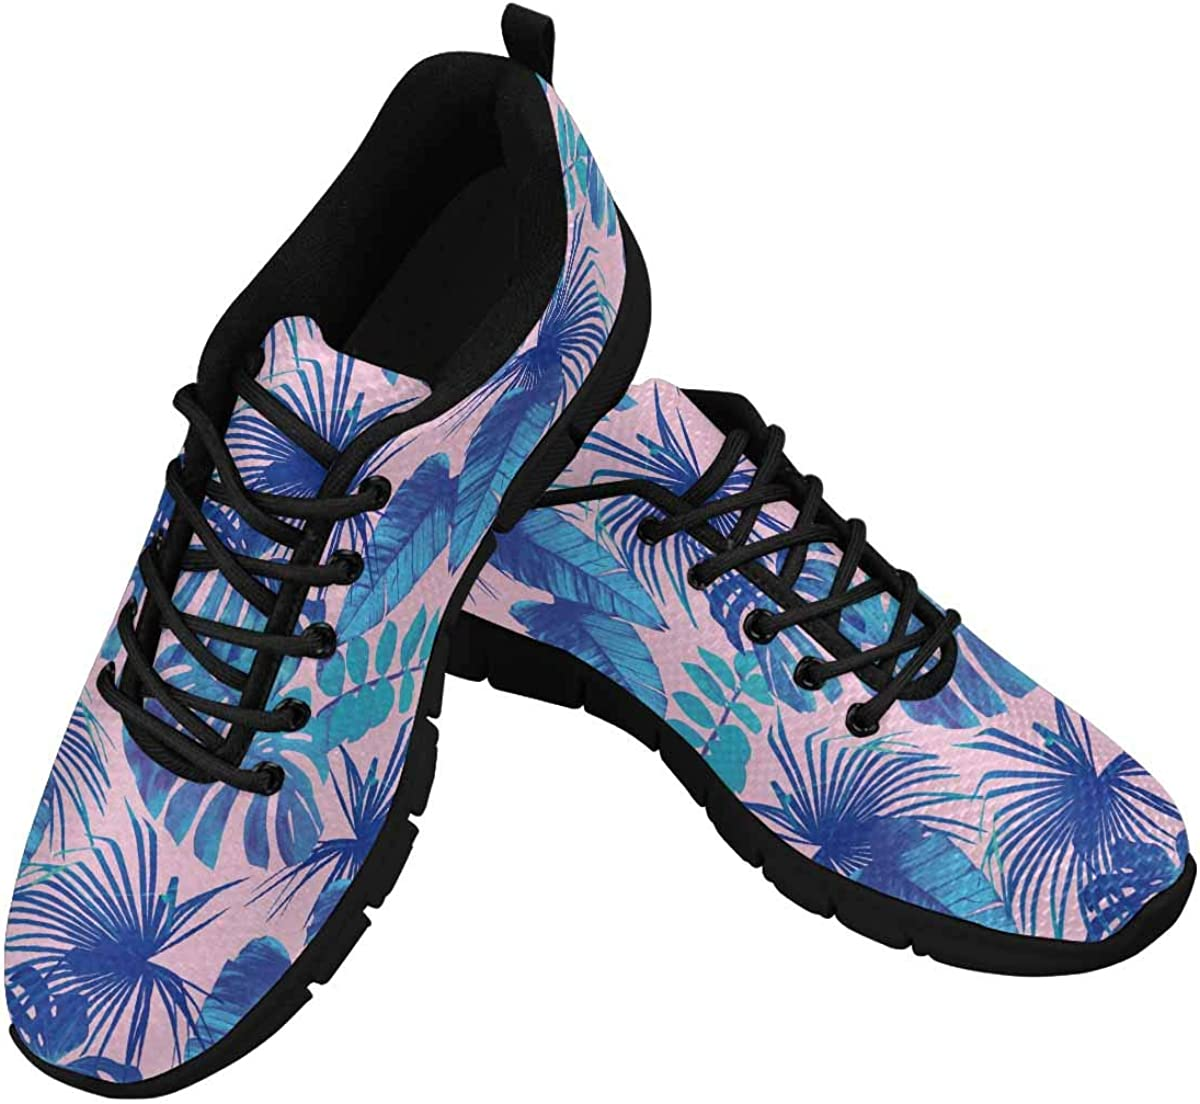 InterestPrint Blue Tropical Leaves Women's Lightweight Athletic Casual Gym Sneakers